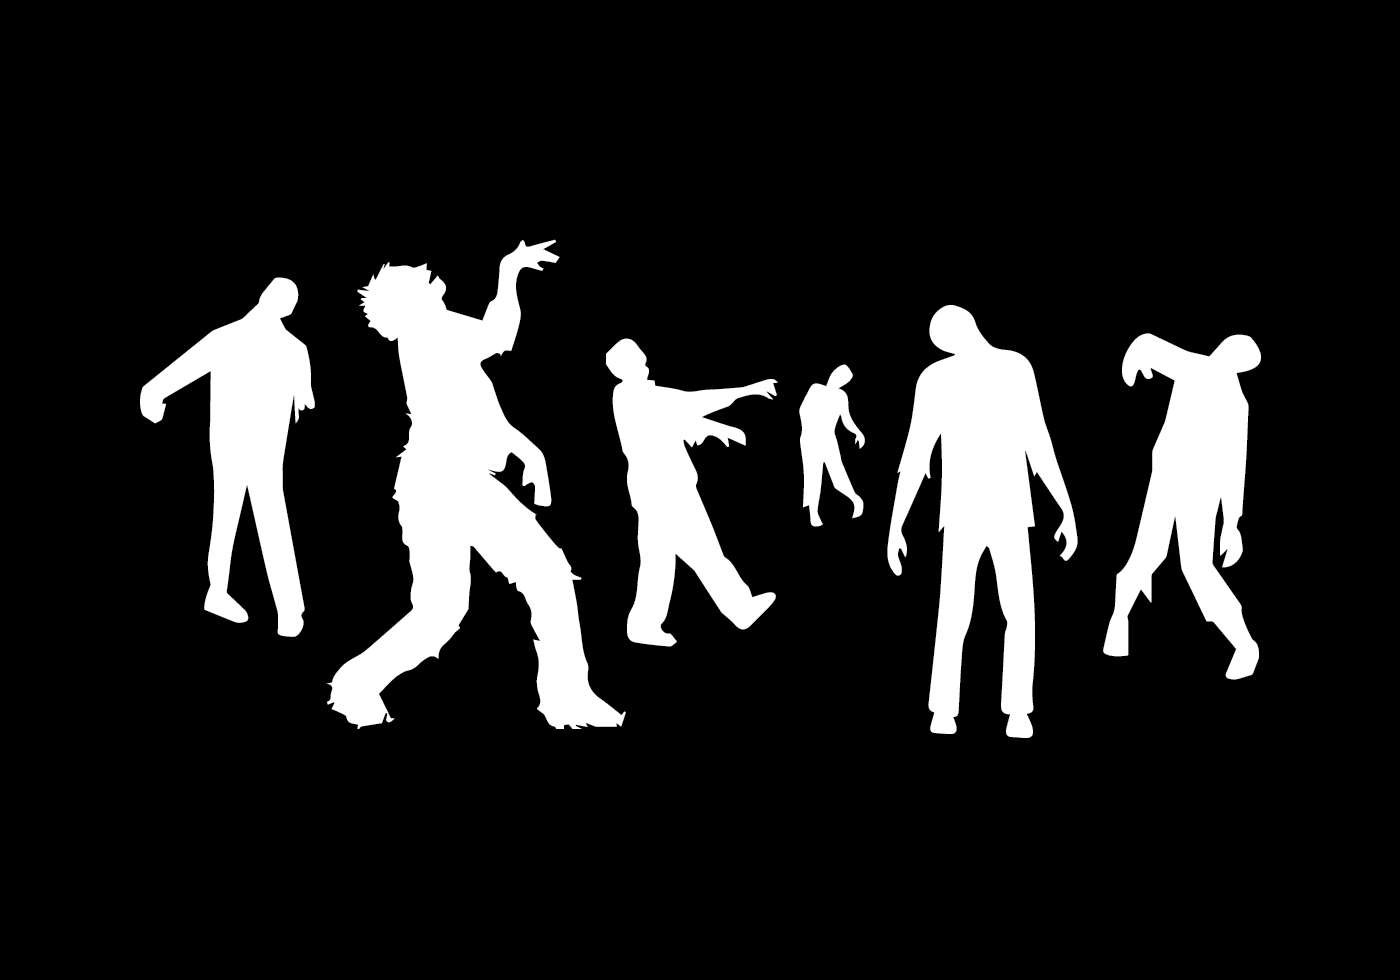 download crawling rotten zombie silhouette stock vector